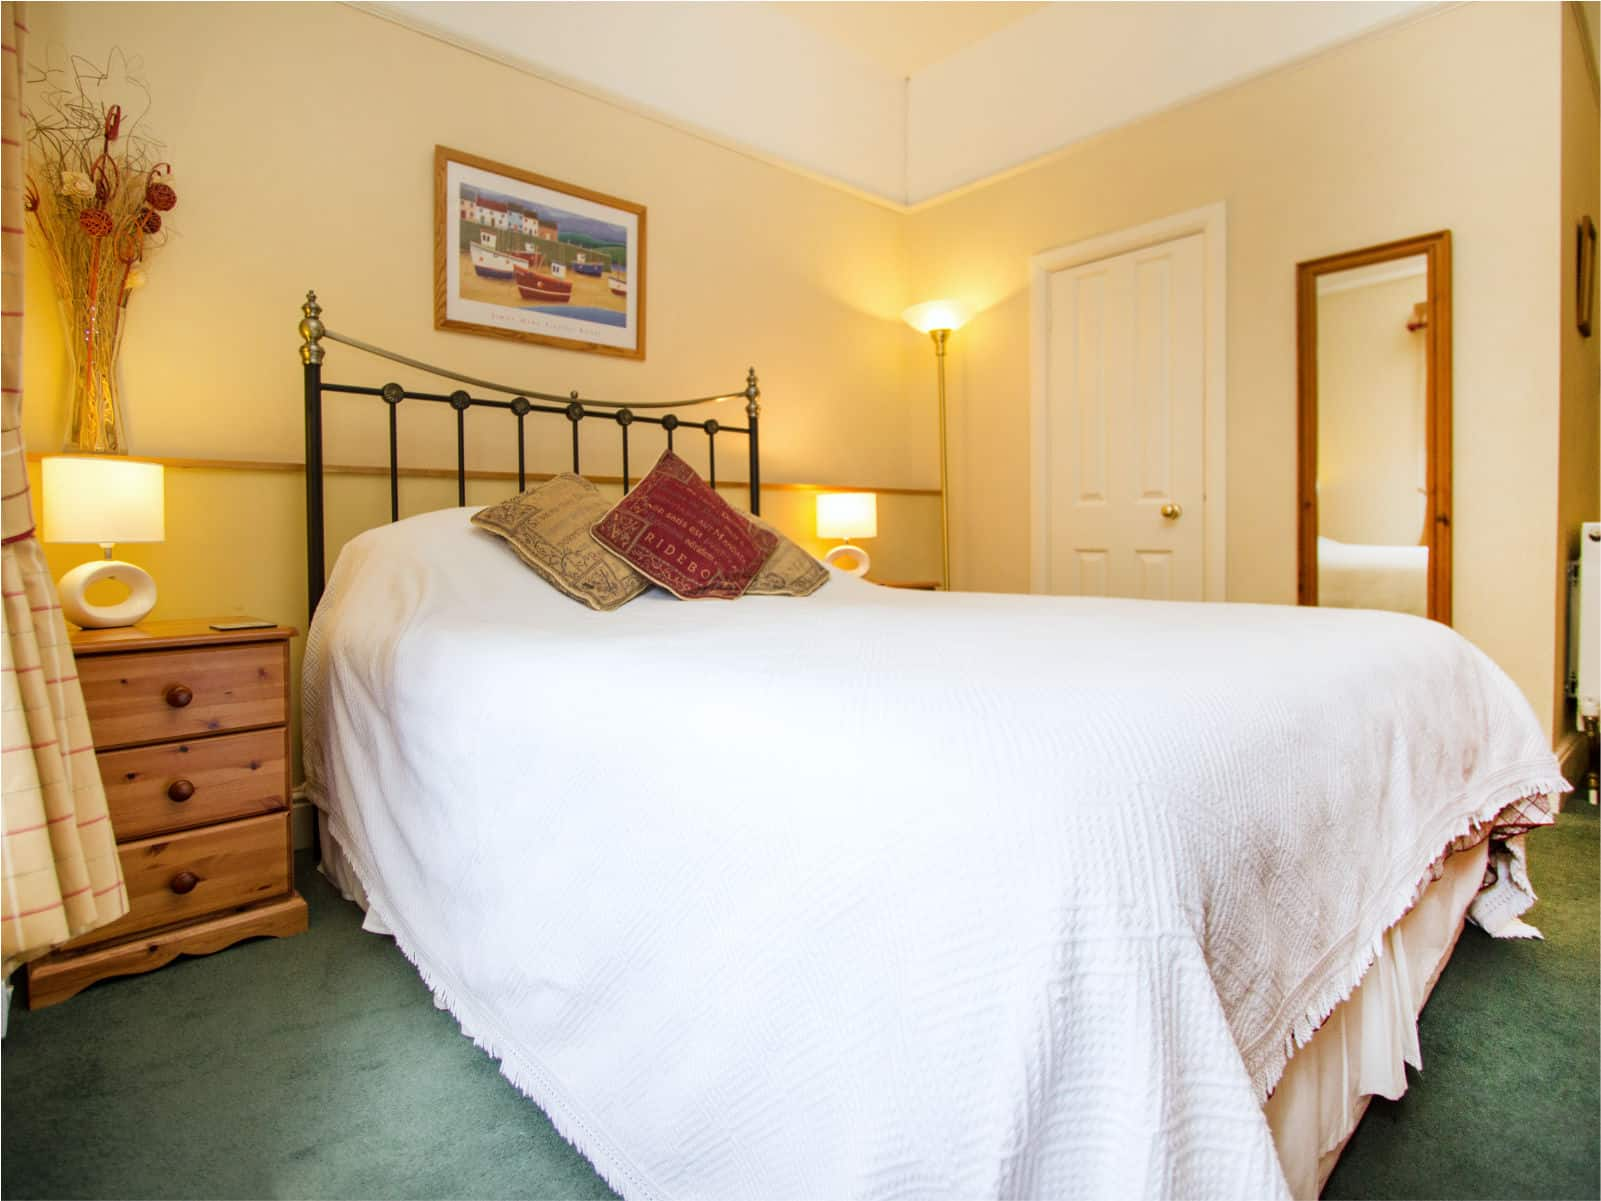 Kingfisher Bedroom Polraen Country House 5